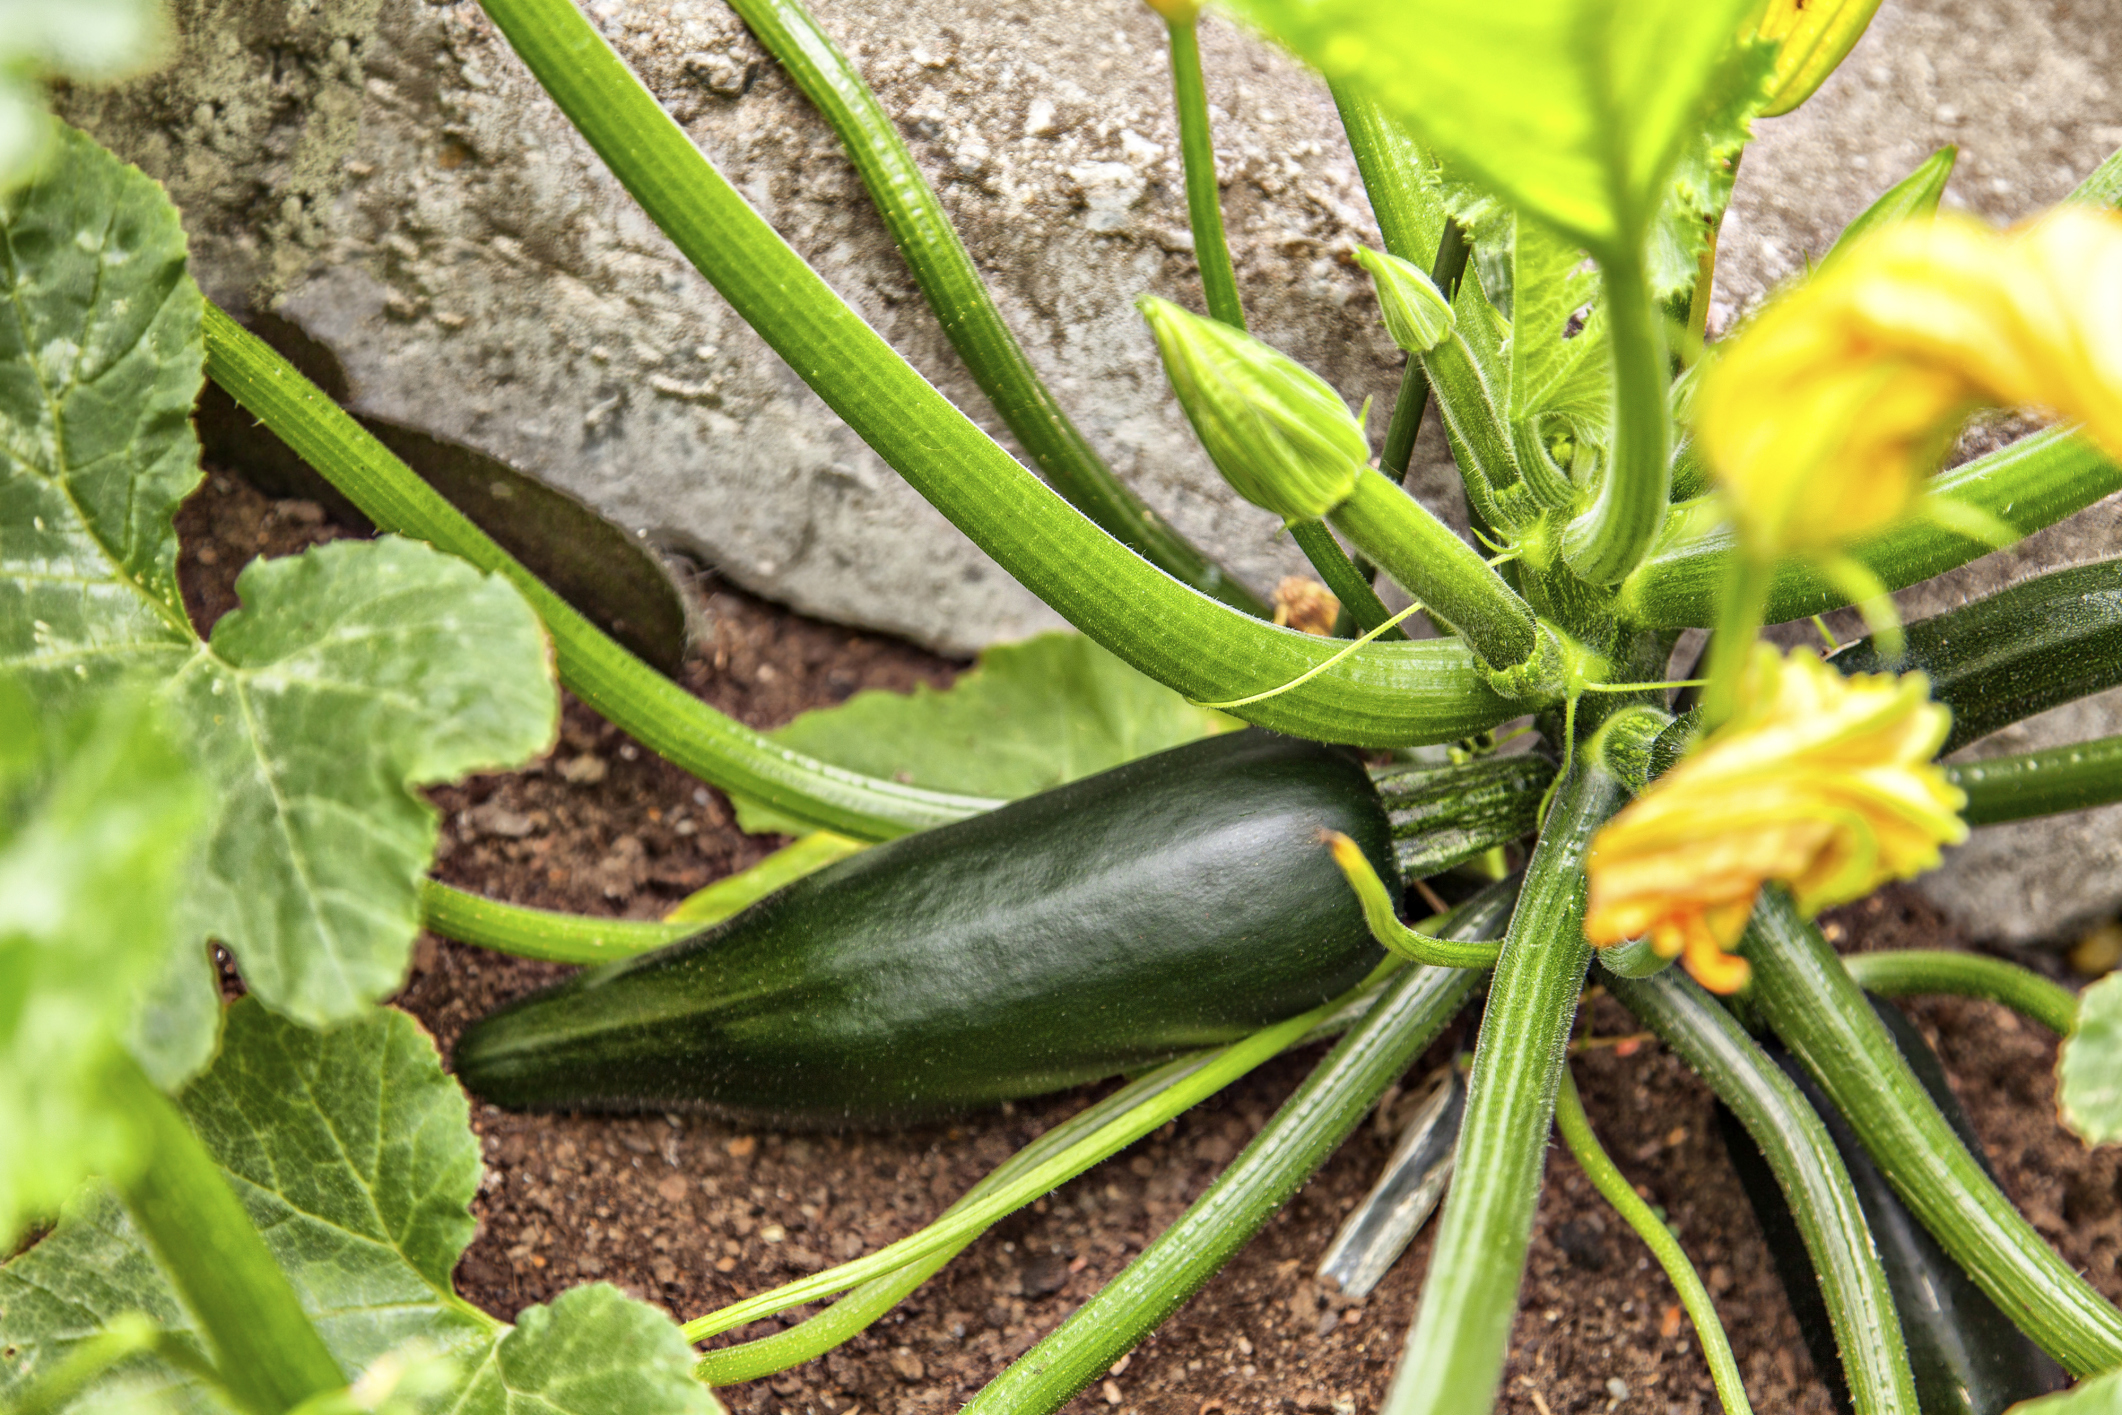 When to Pick a Zucchini | Garden Guides